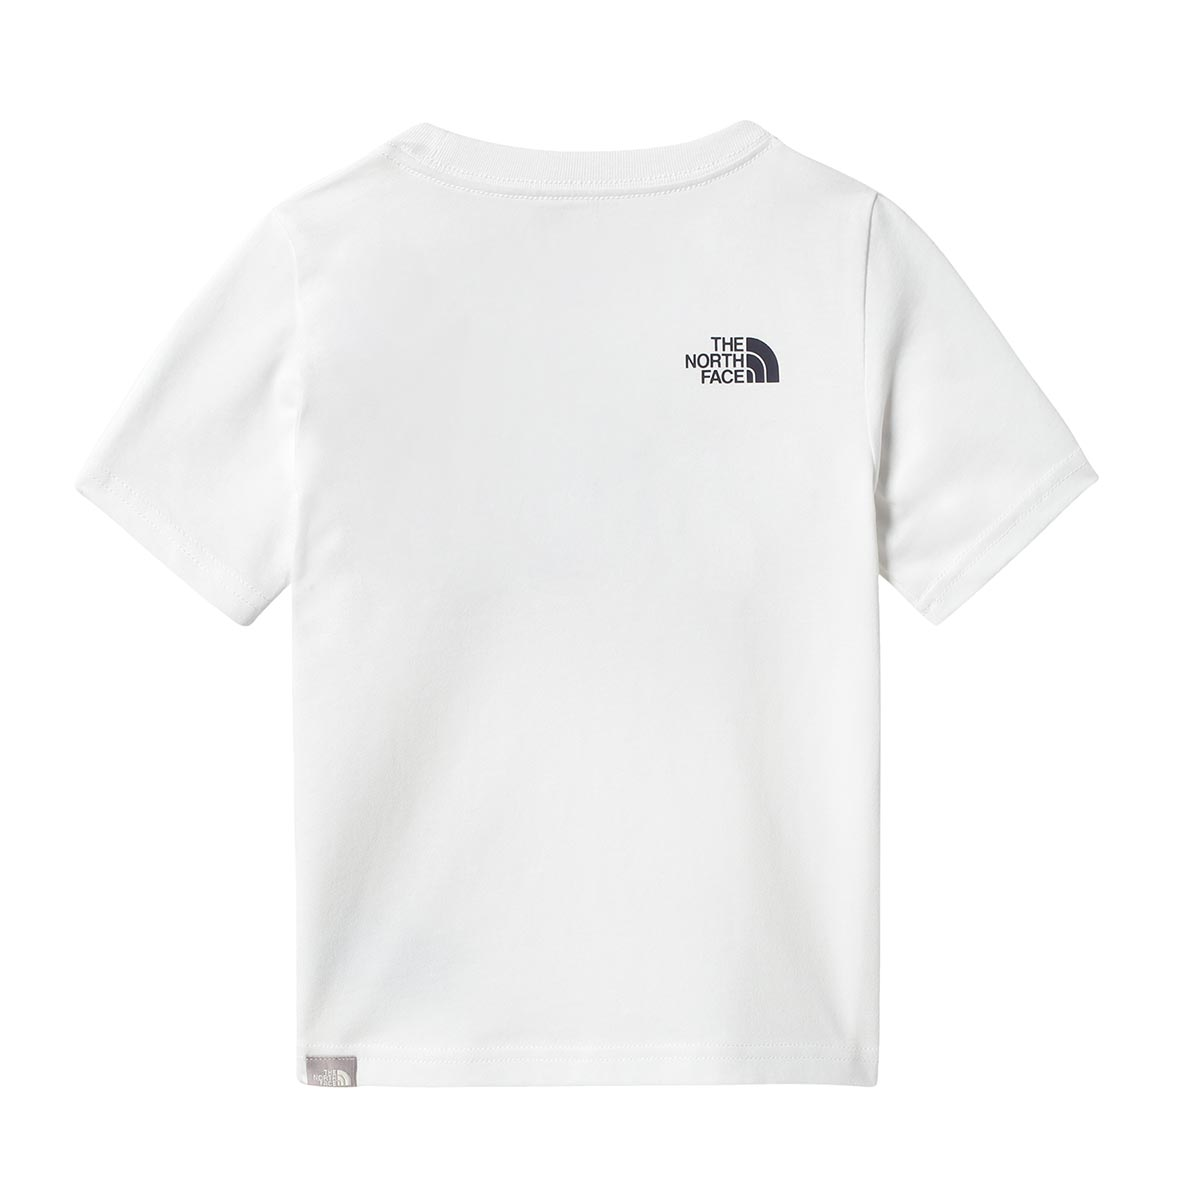 THE NORTH FACE - TODDLER EASY T-SHIRT